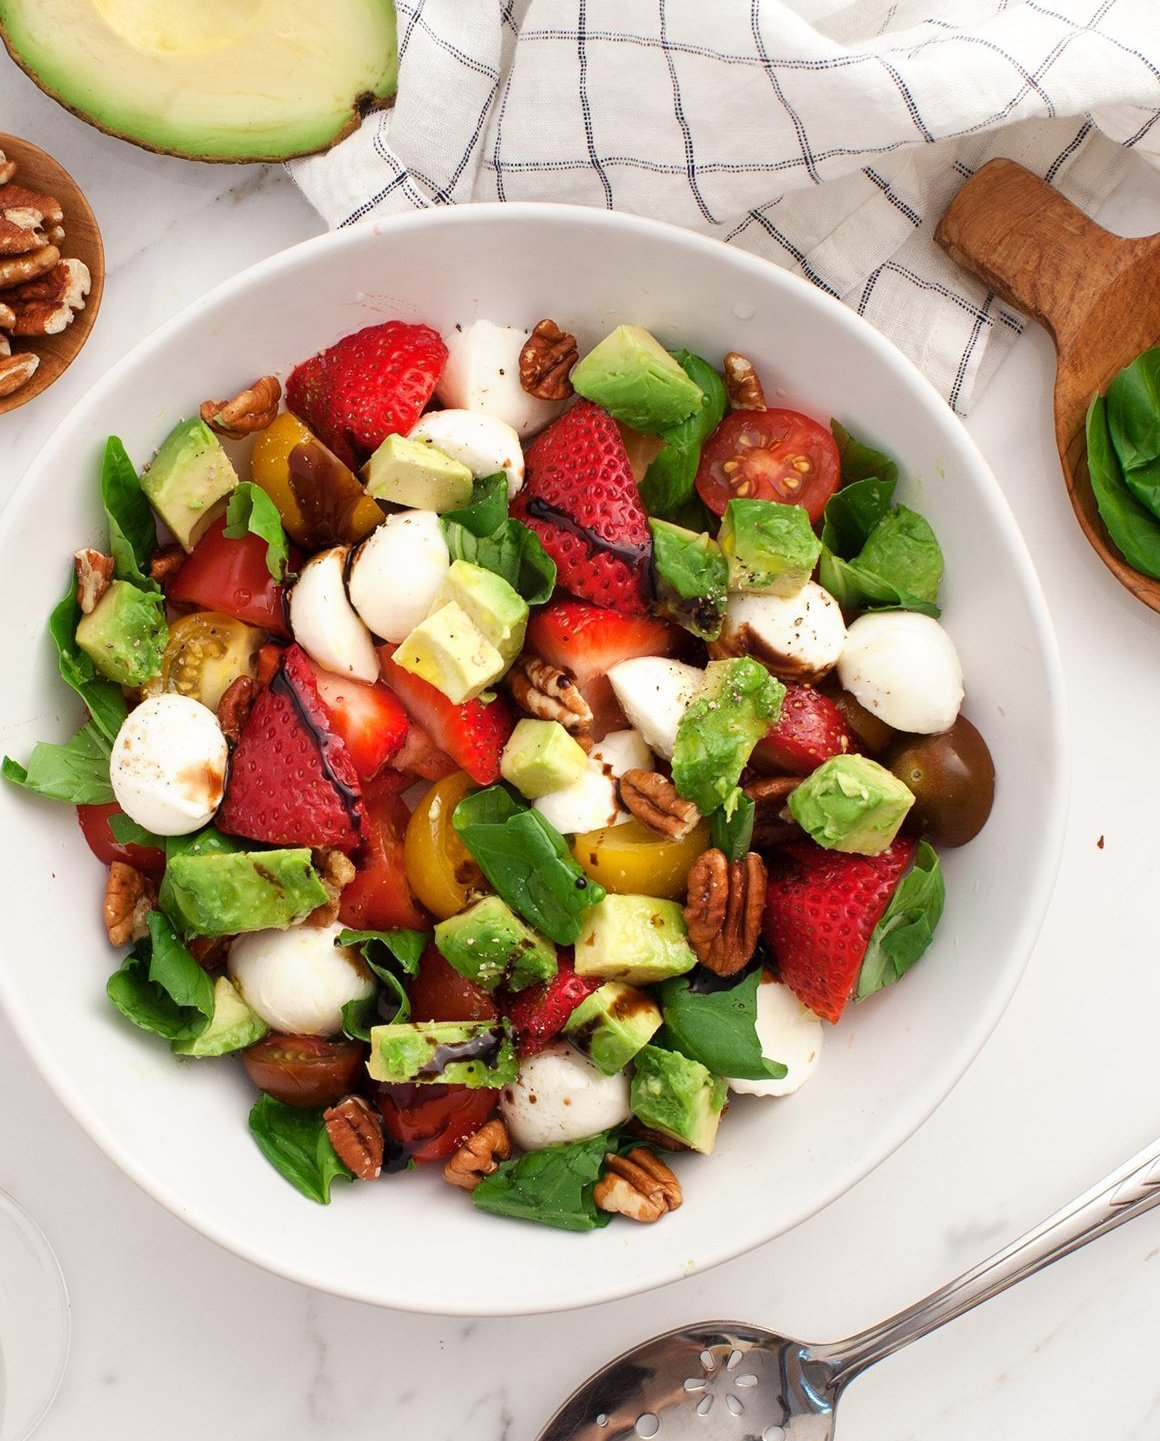 Avocado Caprese Salad (Because!)